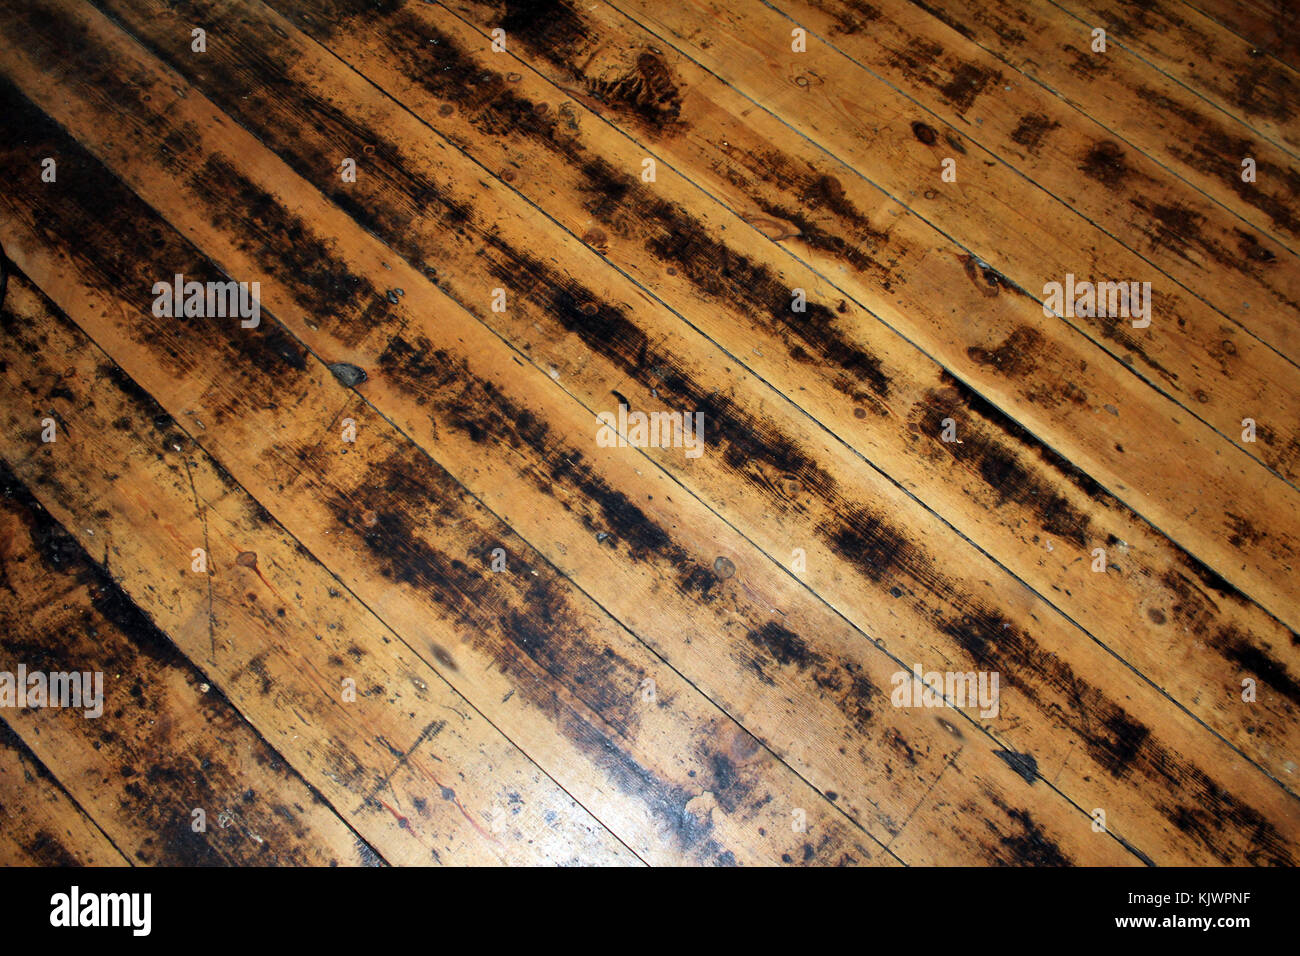 floorboards stockfotos floorboards bilder alamy. Black Bedroom Furniture Sets. Home Design Ideas